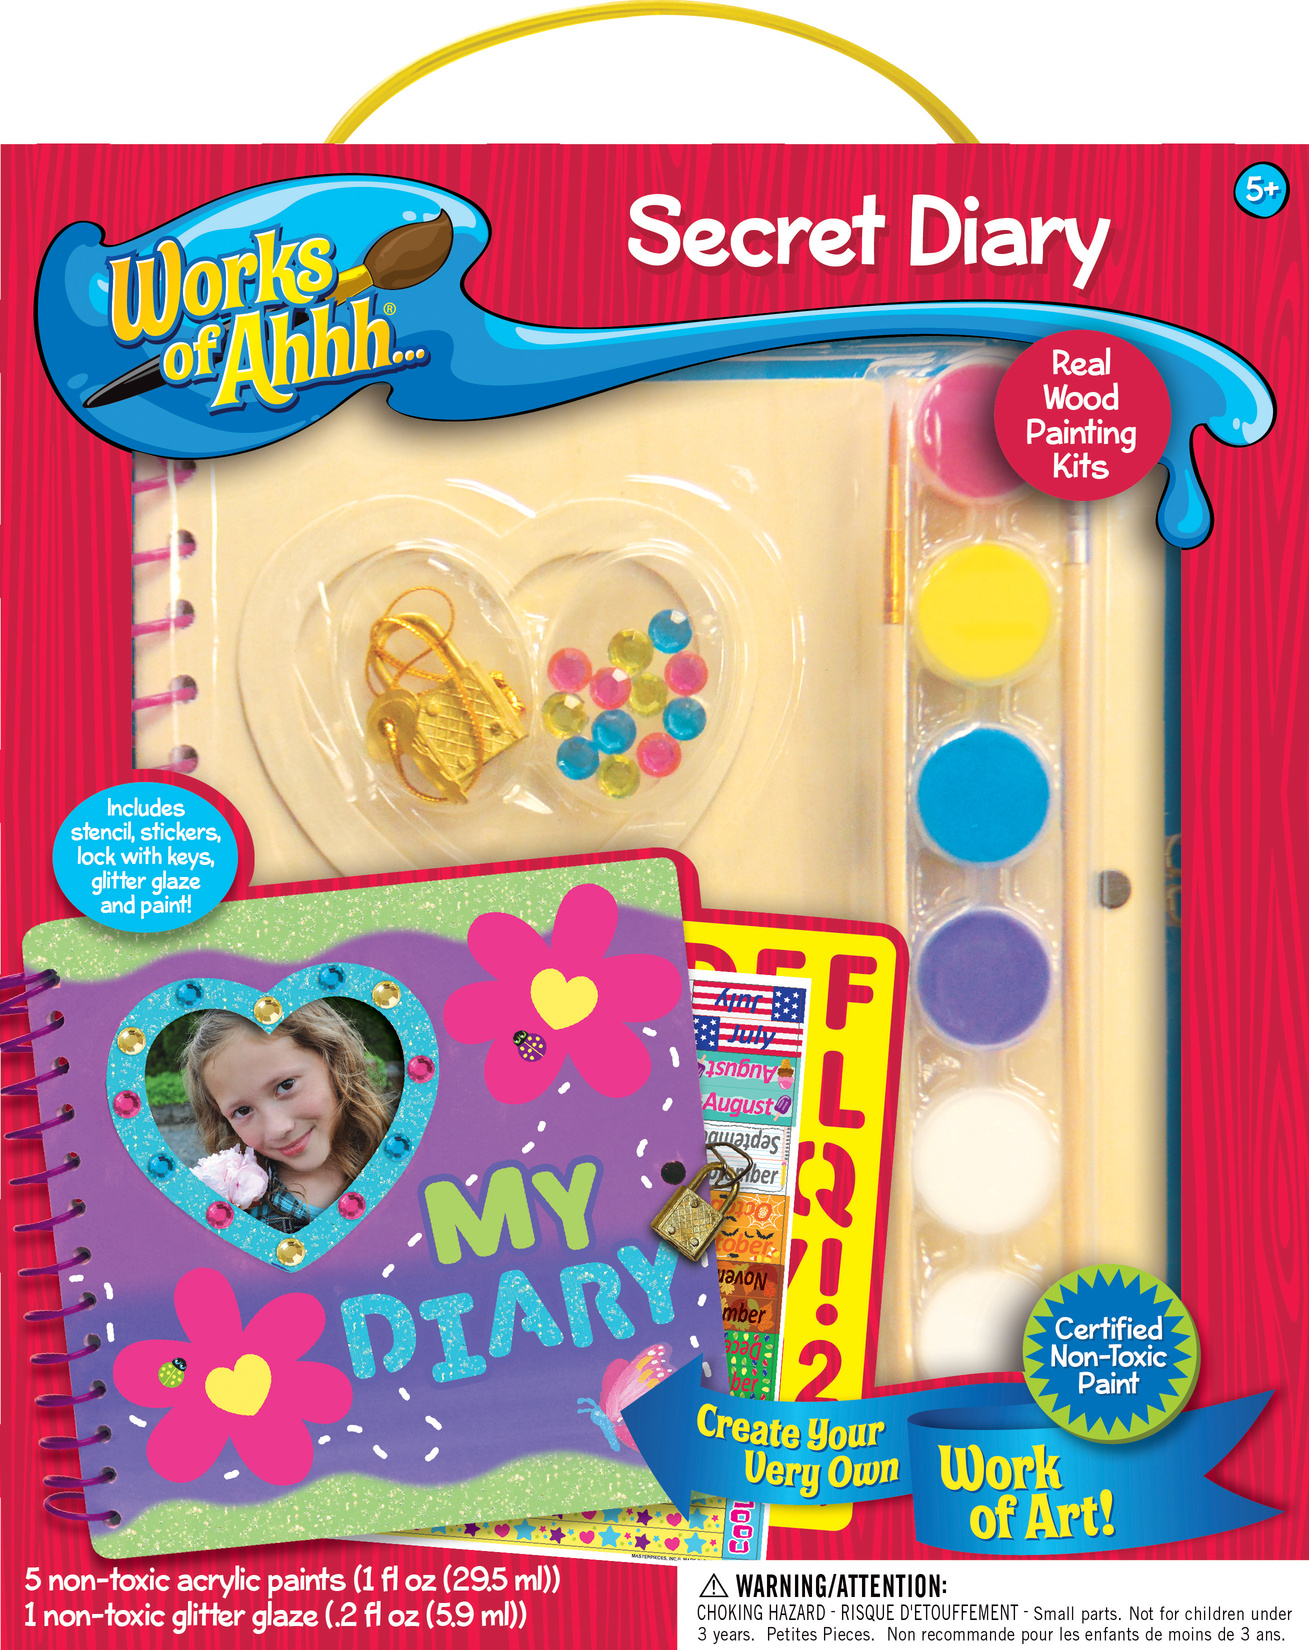 Works Of Ahhh Wood Painting Set Secret Diary